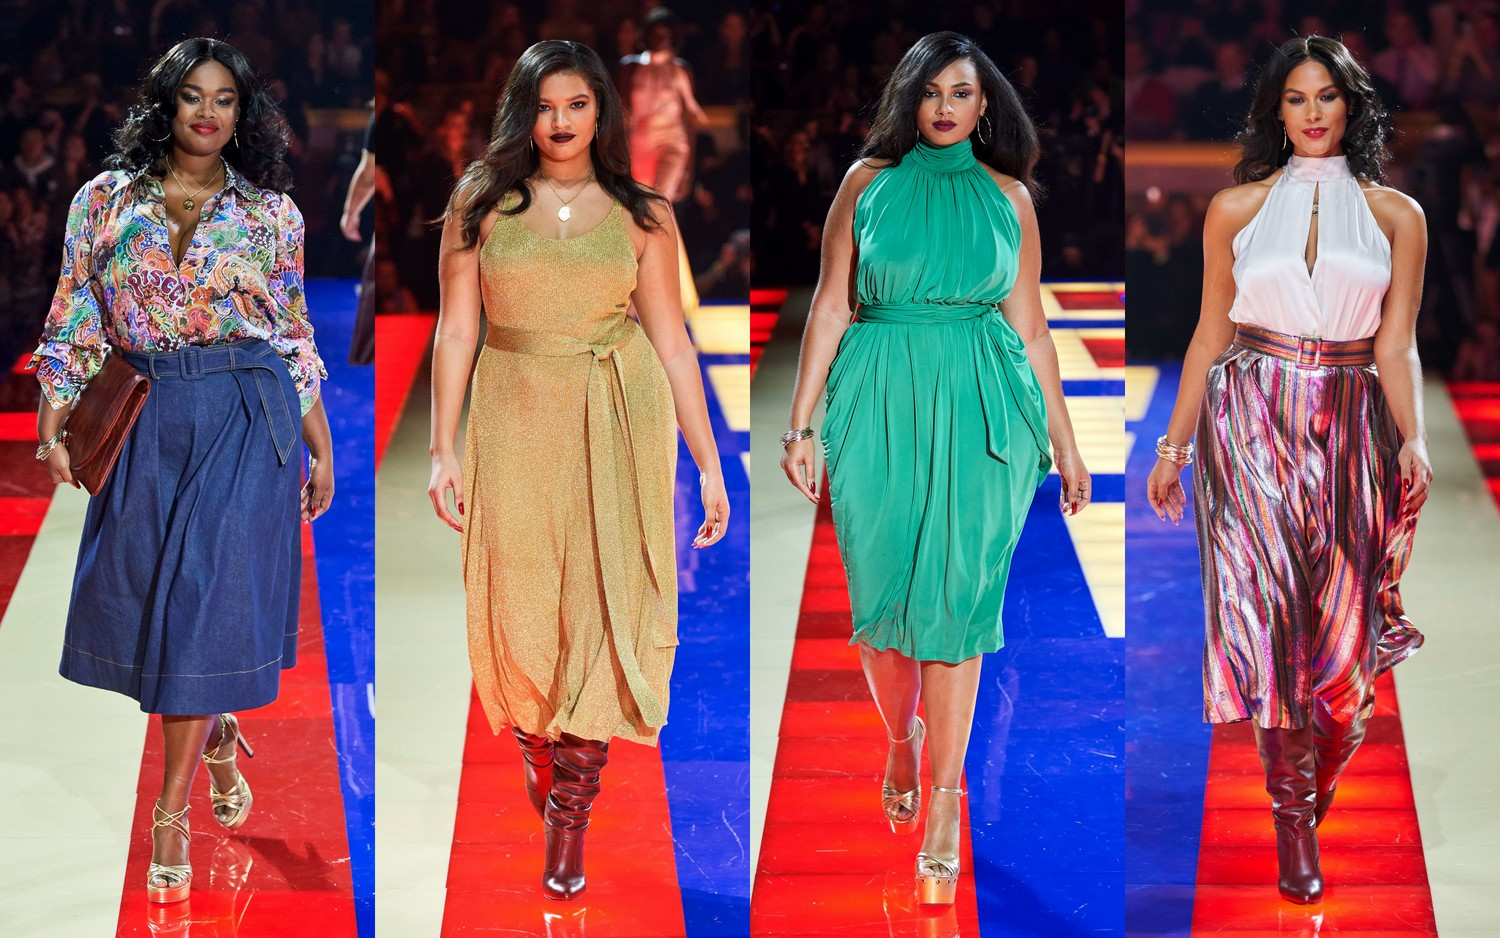 4a93df10f42 Zendaya x Tommy Hilfiger Collection in Plus Sizes aya x Tommy Hilfiger  Collection in Plus Sizes